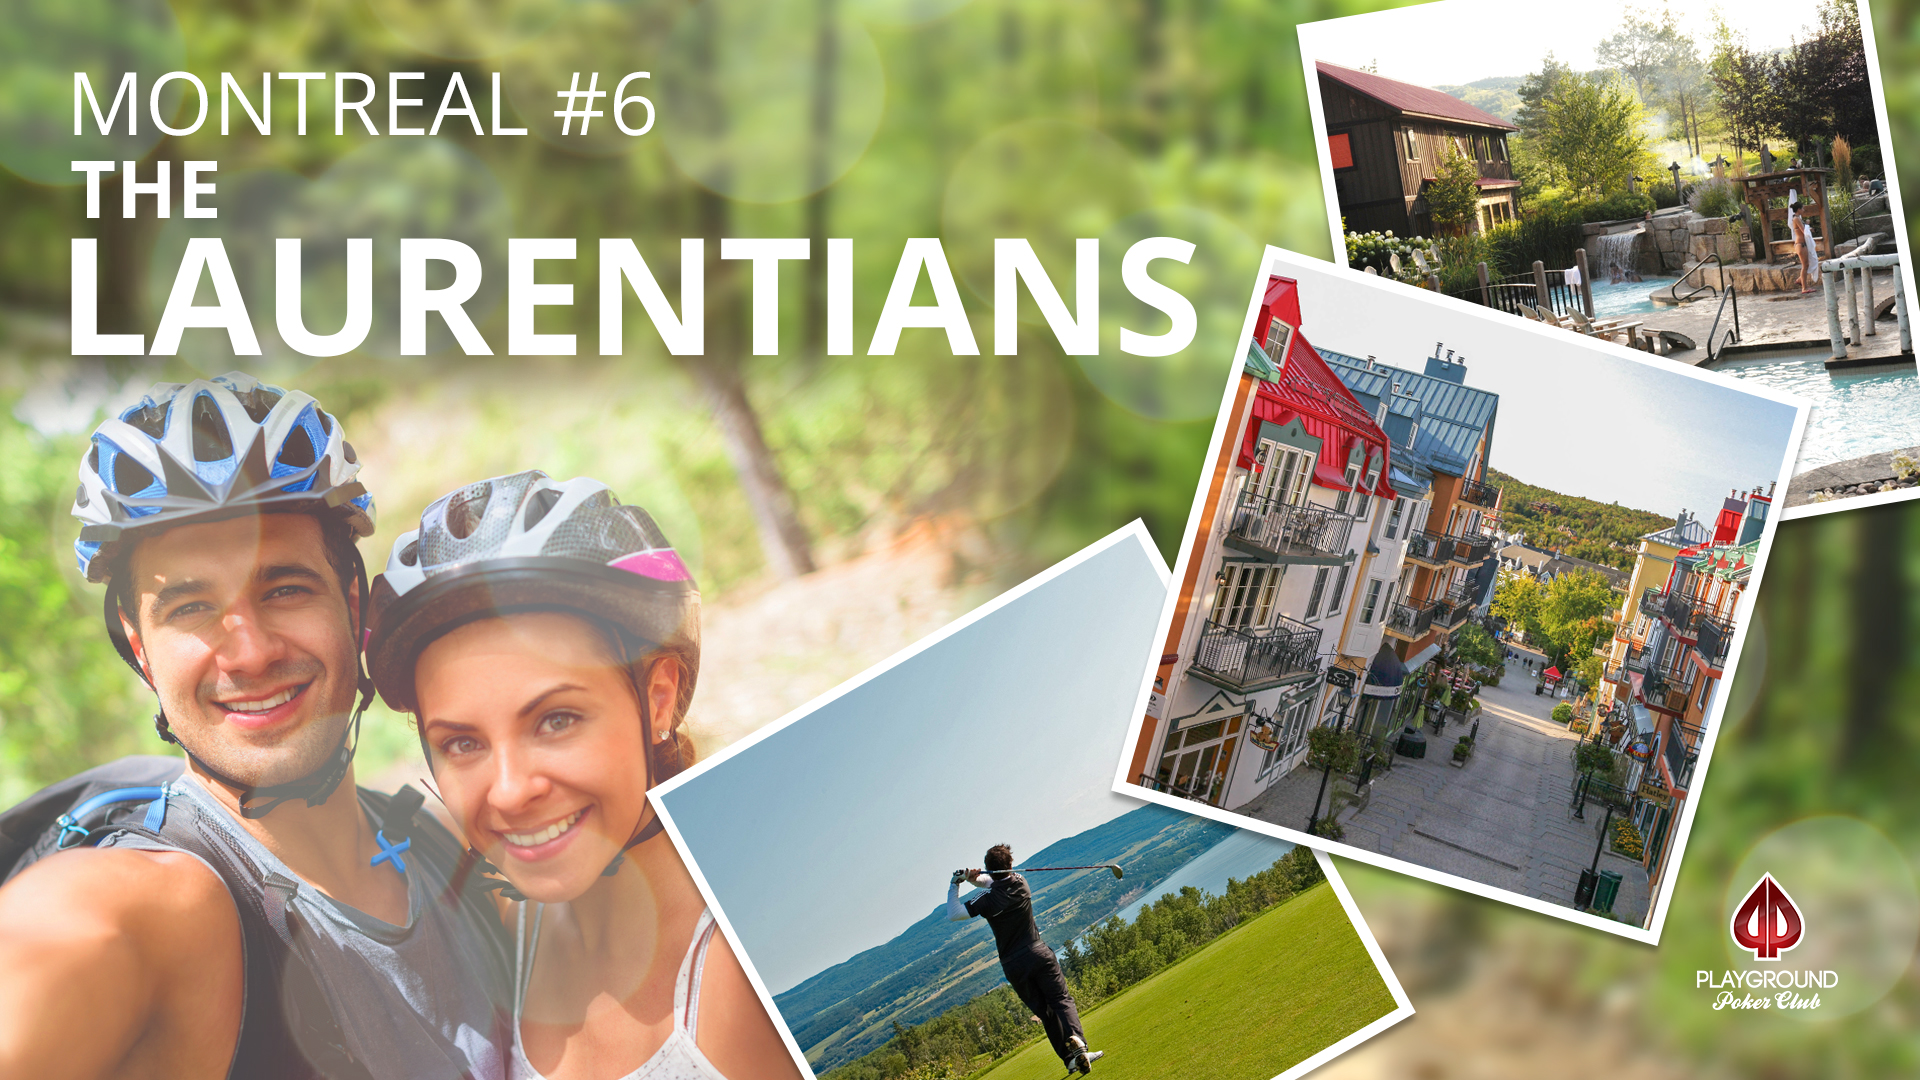 Number 6 on our Top 10 – The Laurentians